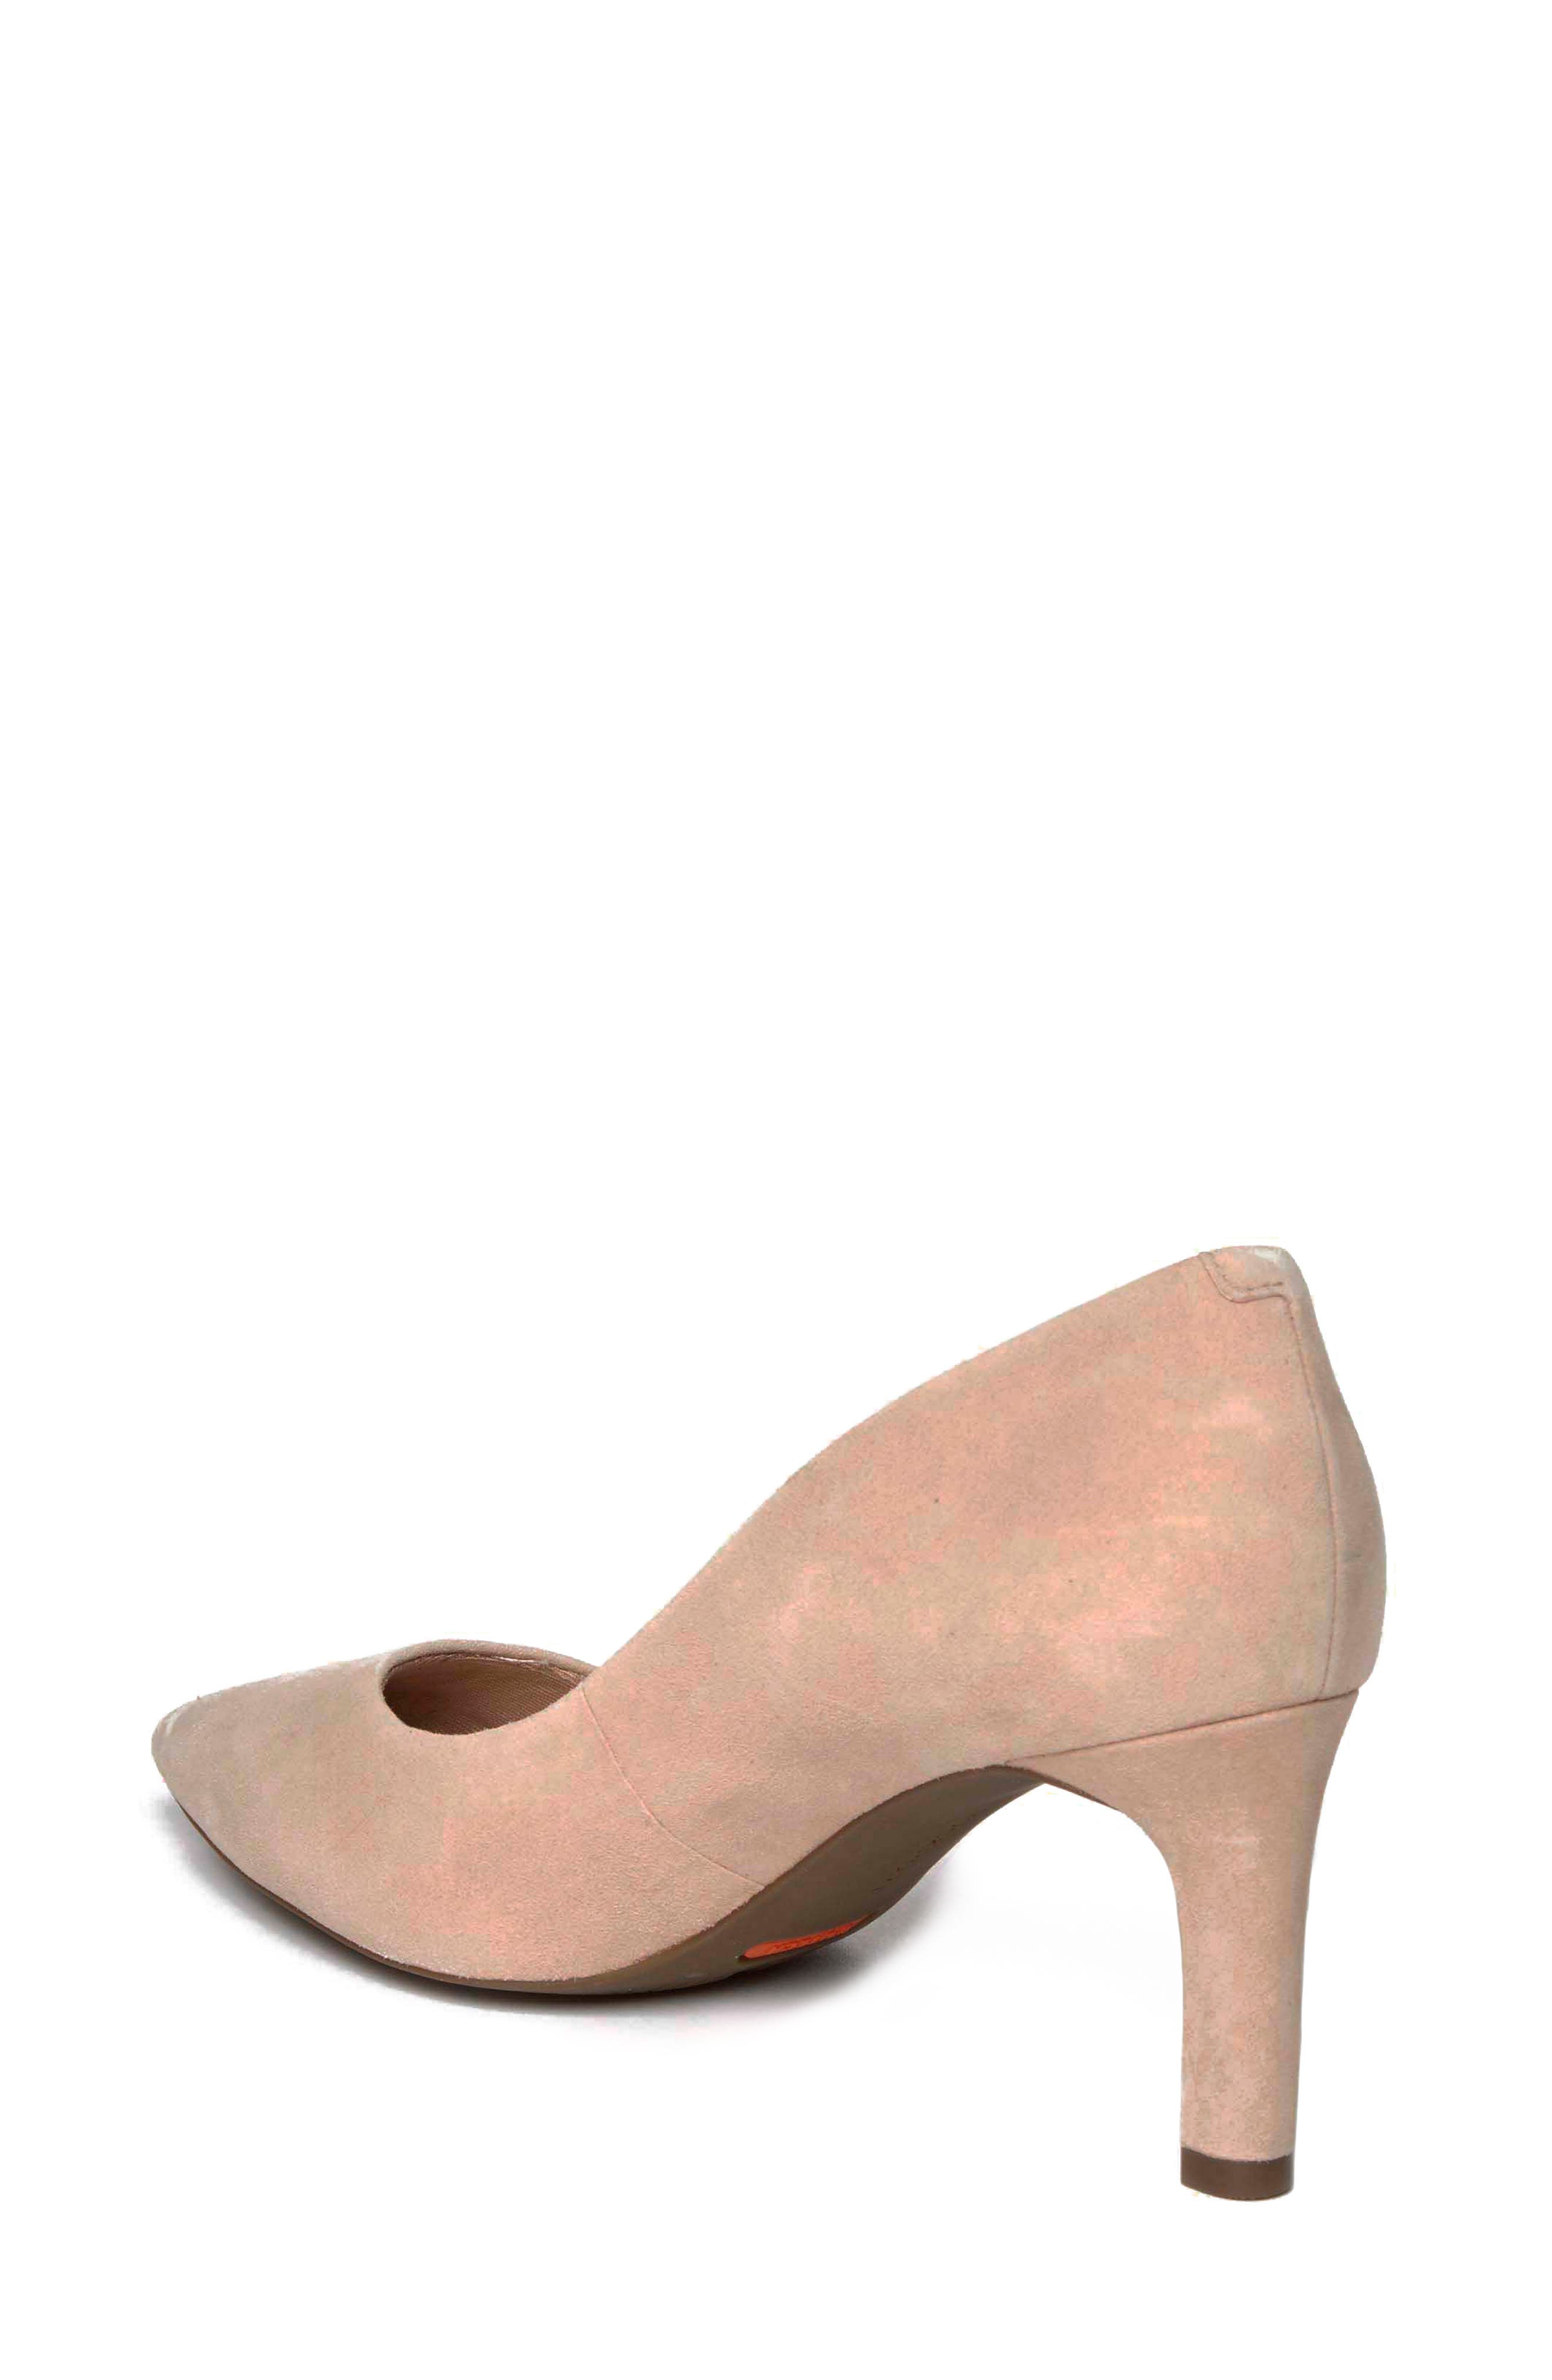 ROCKPORT, Total Motion Luxe Valerie Pump, Alternate thumbnail 2, color, BLUSH SUEDE